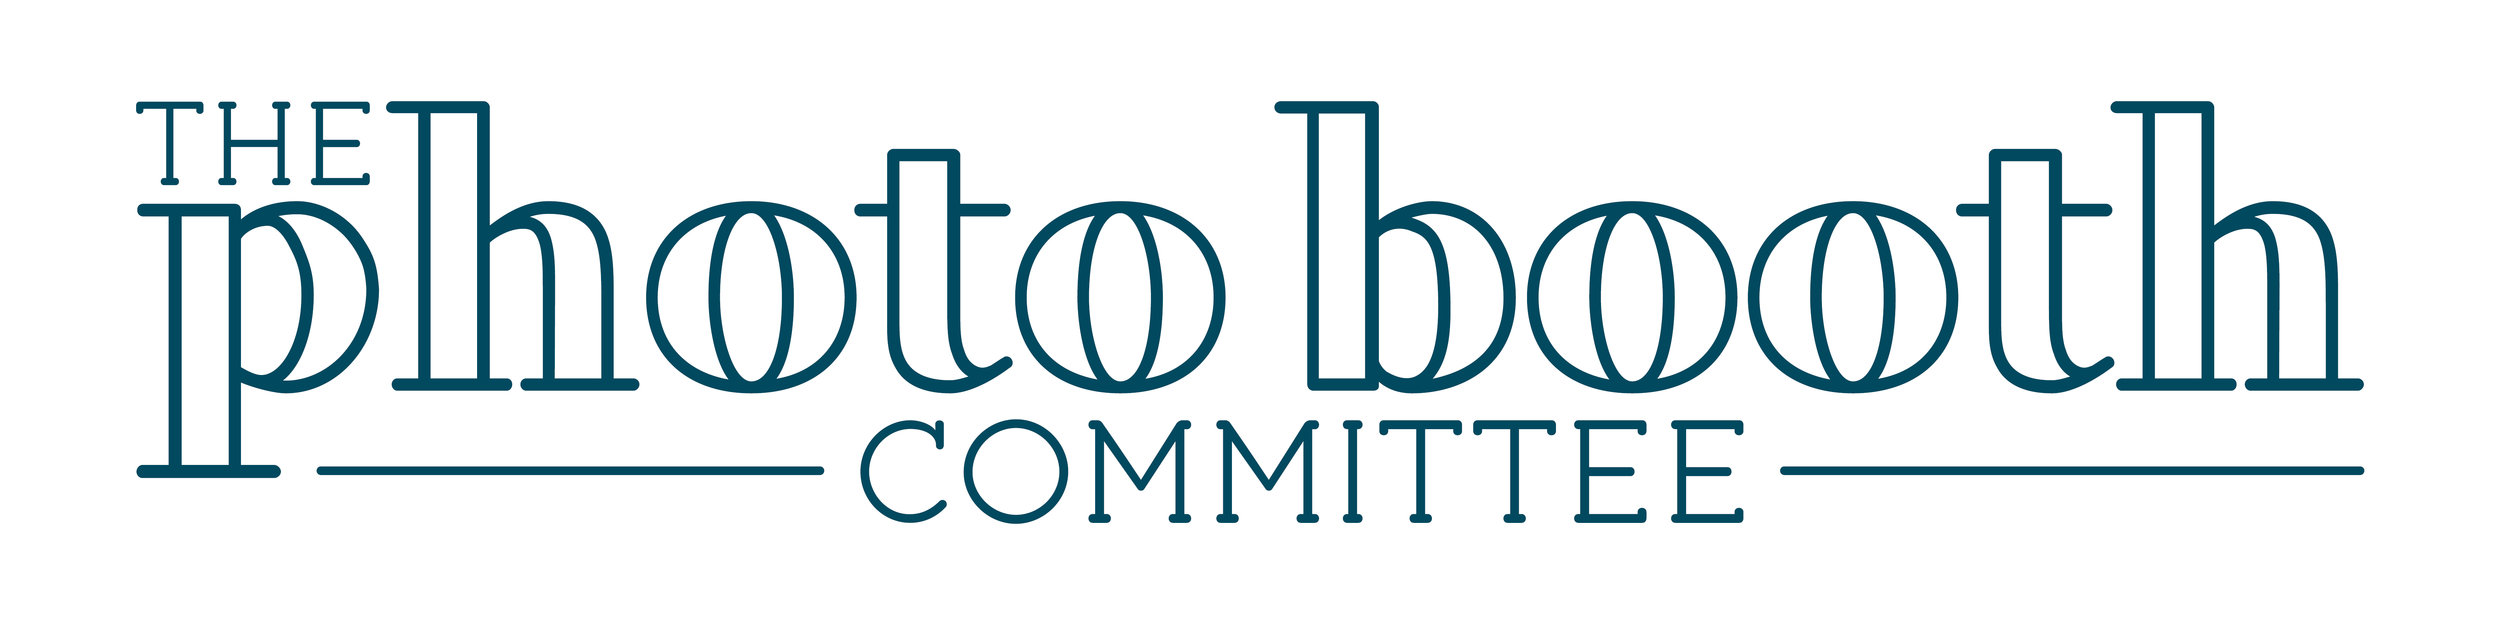 The Photo Booth Committee Logo.jpg